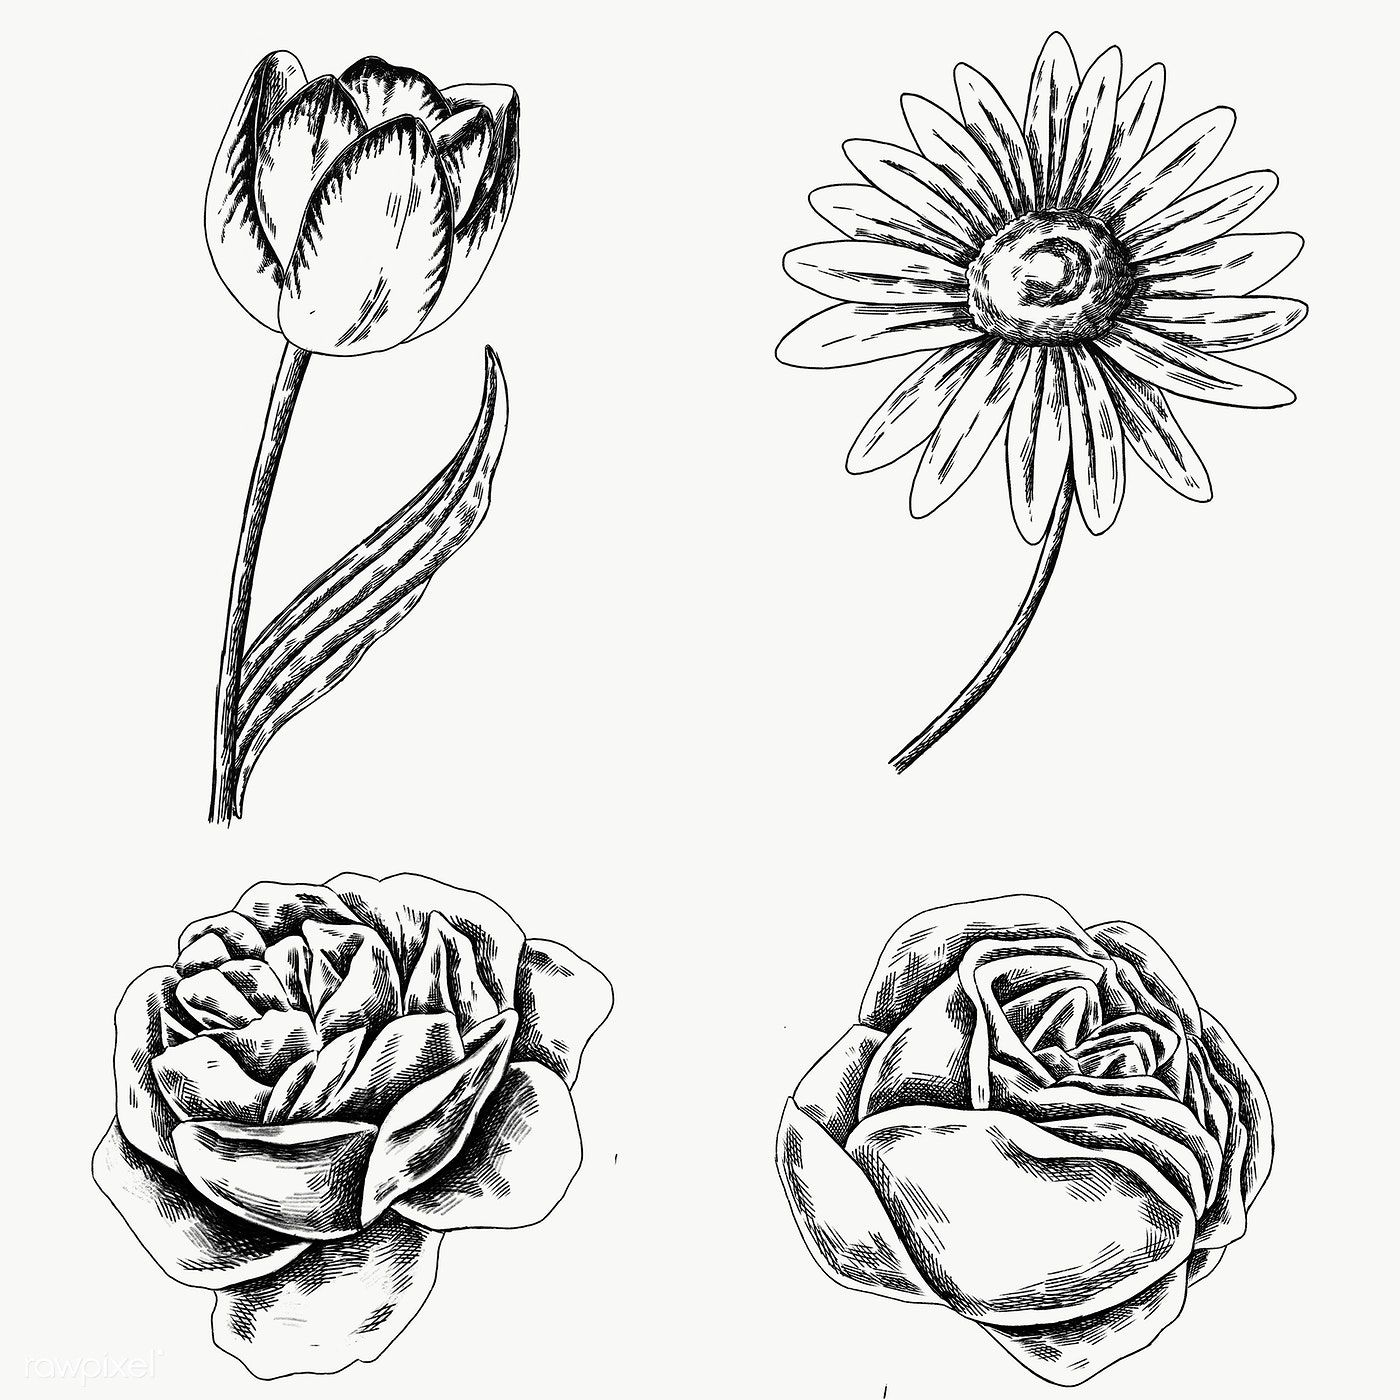 Download Premium Png Of Vintage Flower Drawing Set Transparent Png 2091337 In 2020 Flower Drawing Vintage Flowers Drawing Set